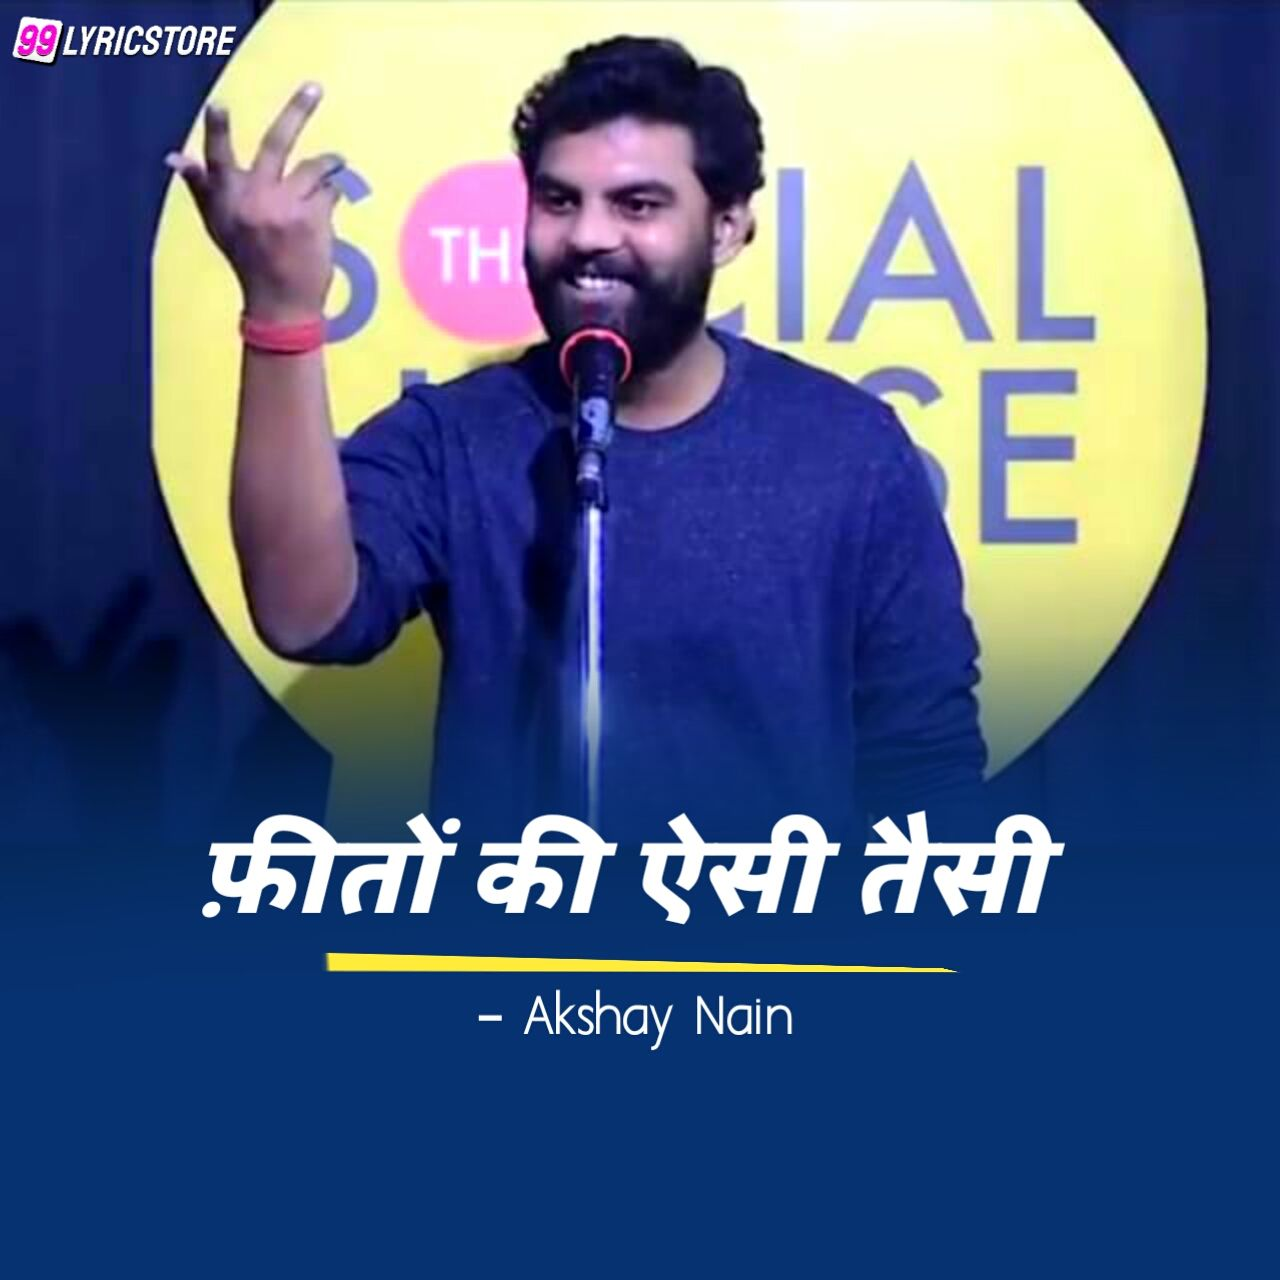 फ़ीतों की ऐसी तैसी Poetry has written and performed by Akshay Nain on The Social House's Plateform.